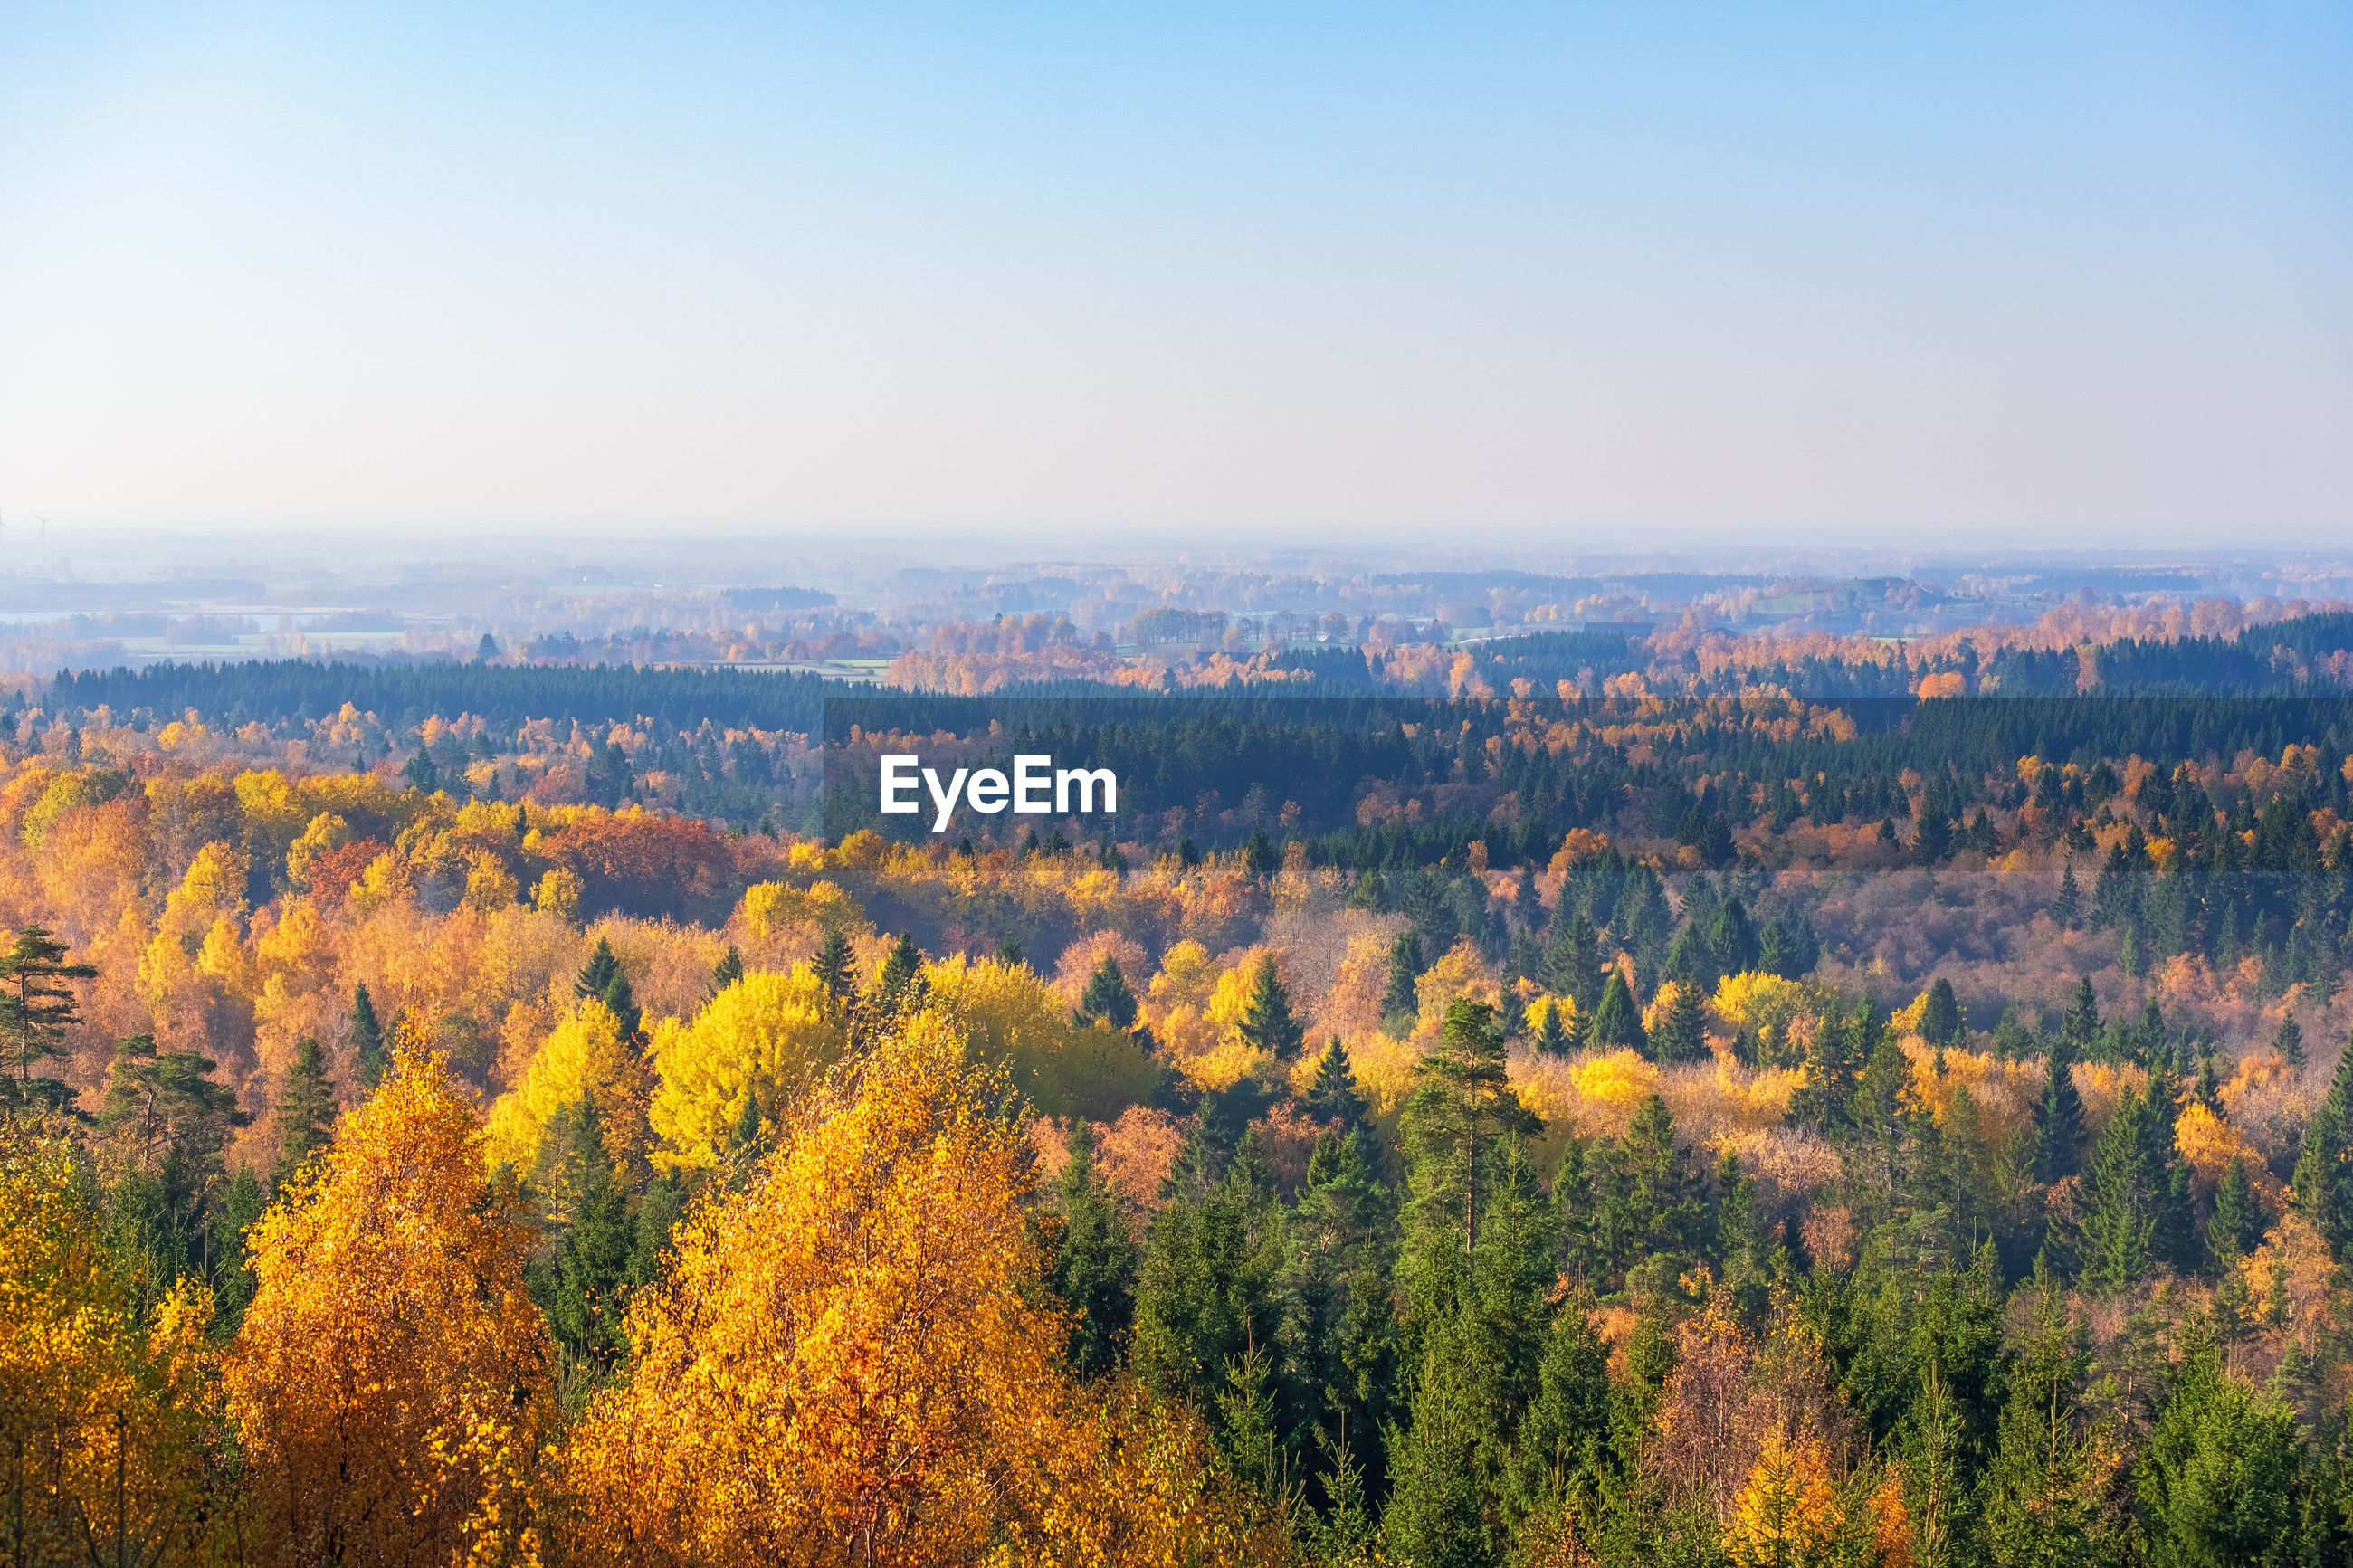 SCENIC VIEW OF TREES DURING AUTUMN AGAINST SKY